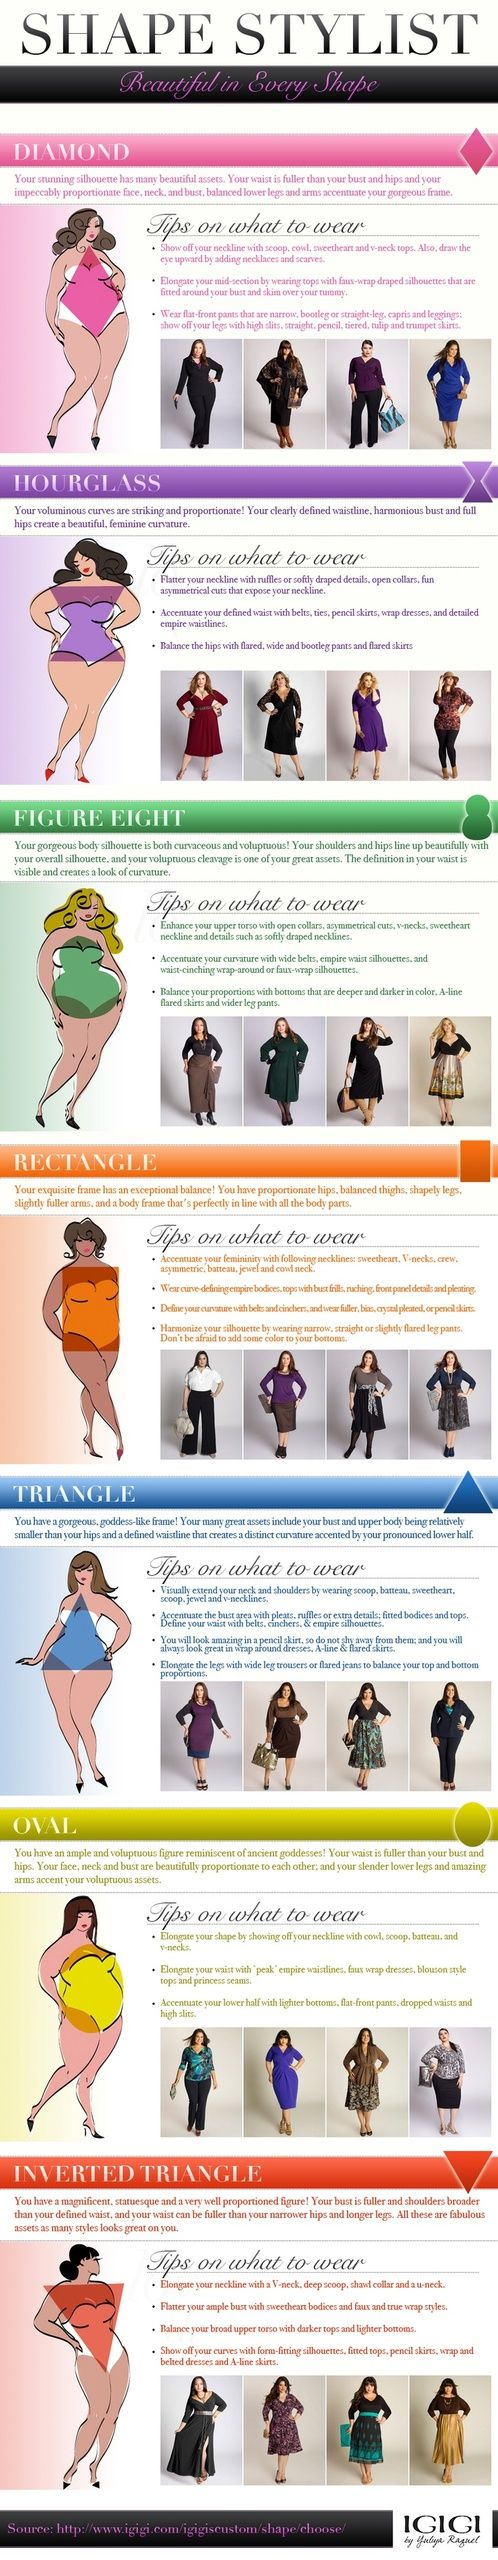 220cd8a9e88 Plus Size Fashion Tips  Dressing for Your Shape as a Plus Size Woman ...